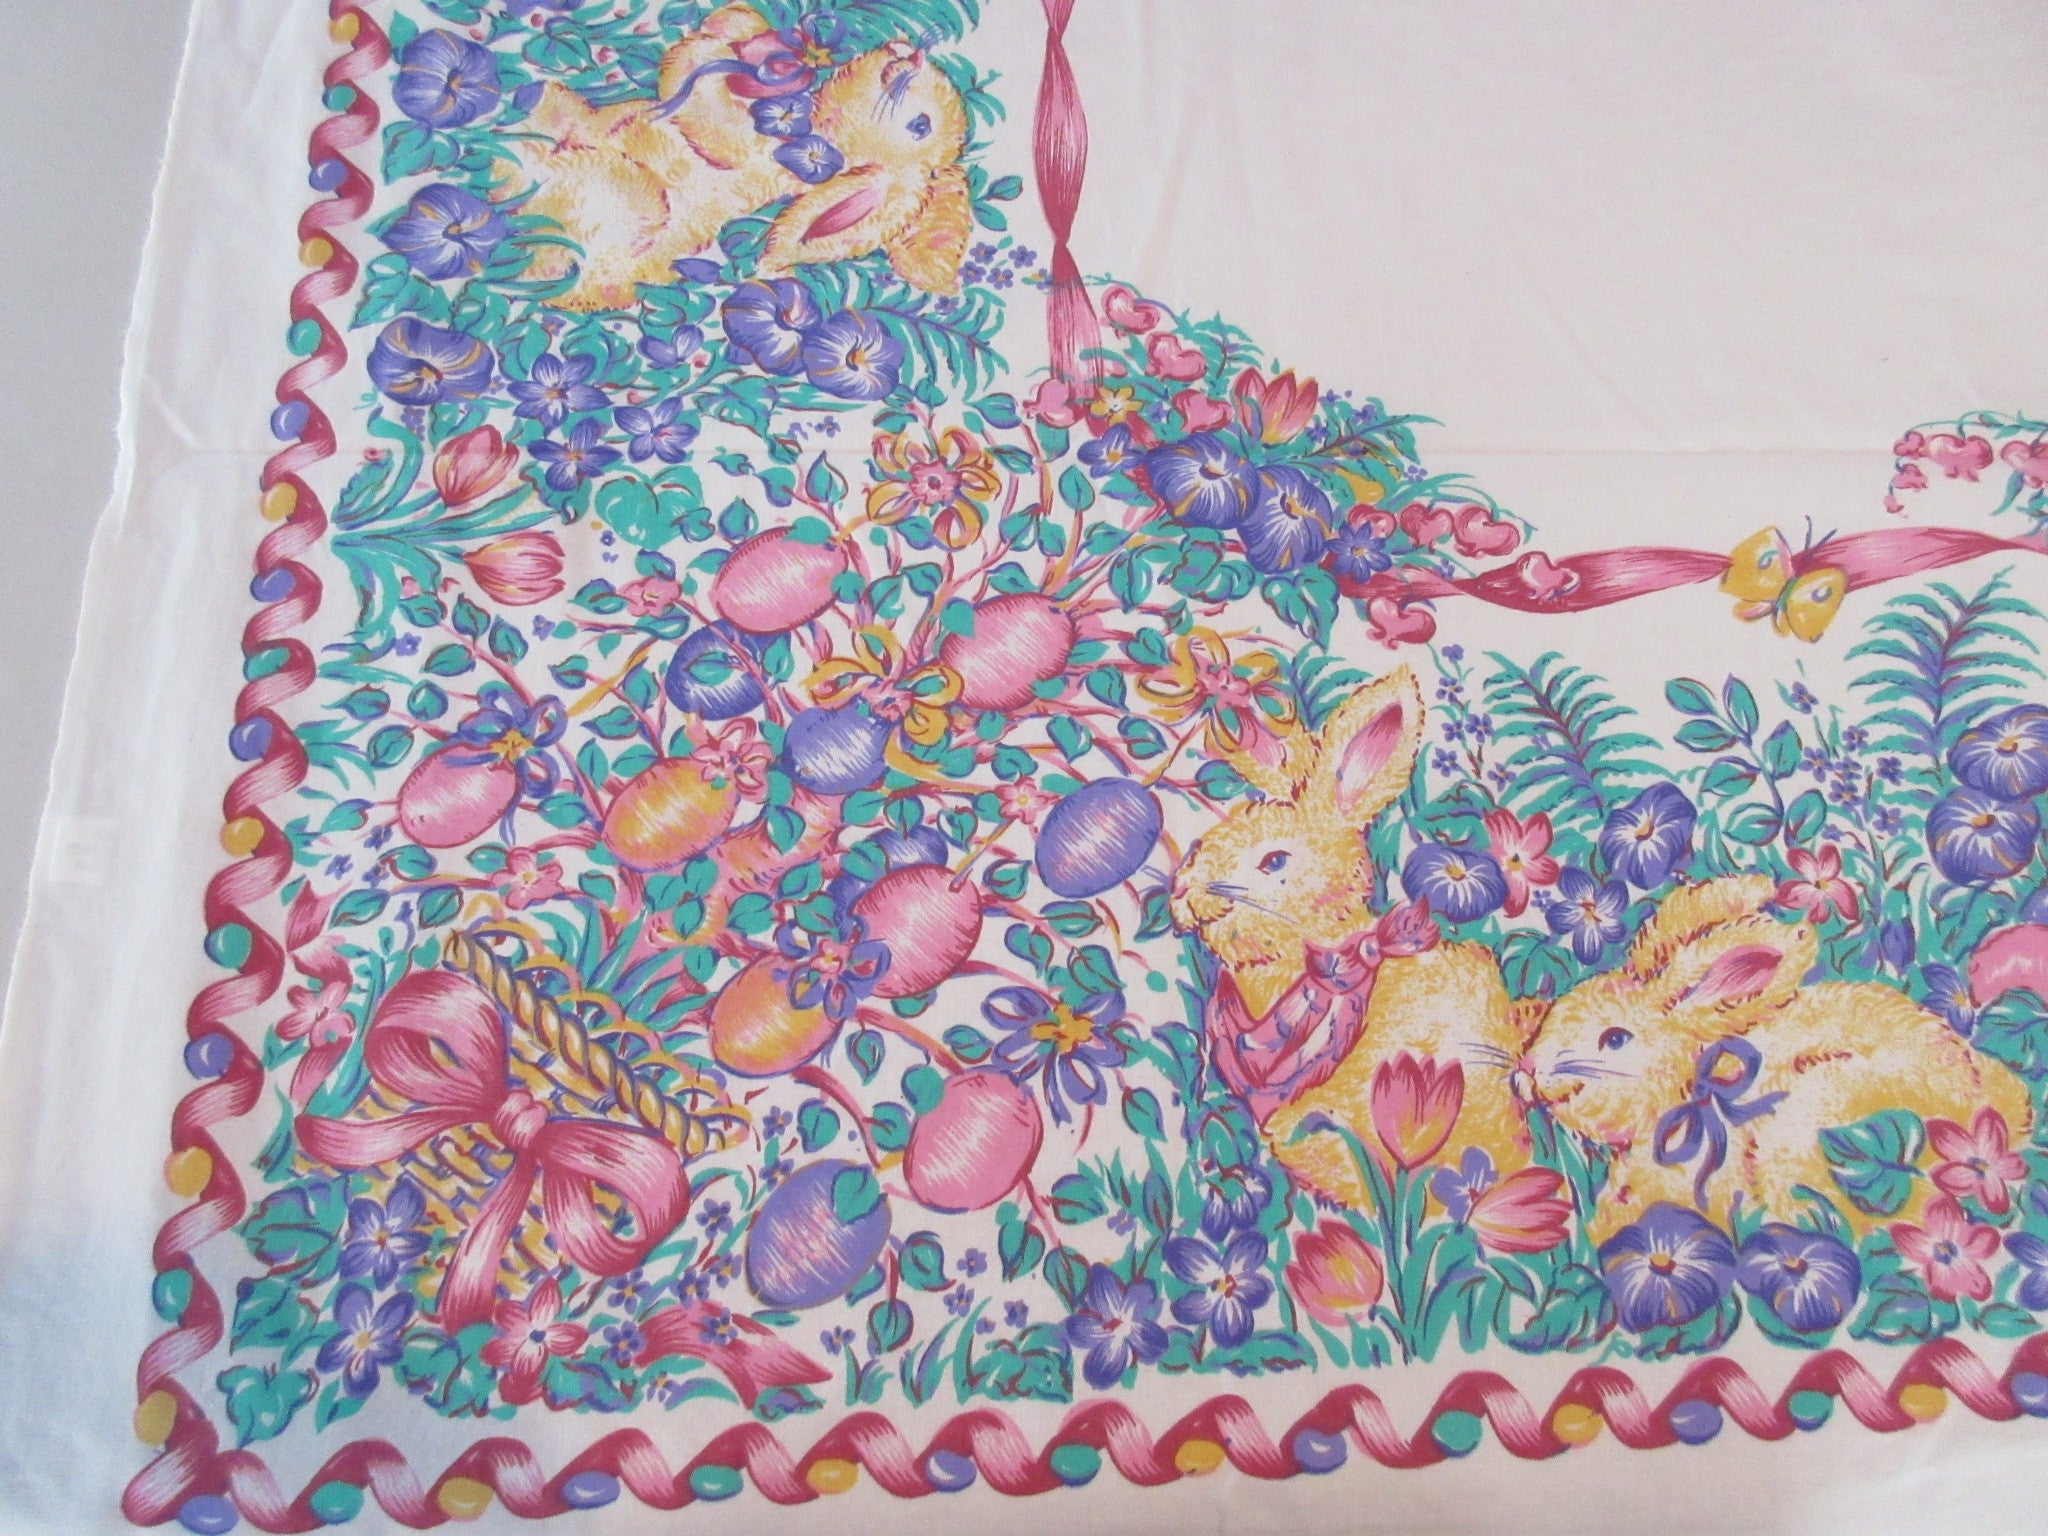 Retro Square Easter Bunny Egg Tree Novelty Vintage Printed Tablecloth (52 X 50)